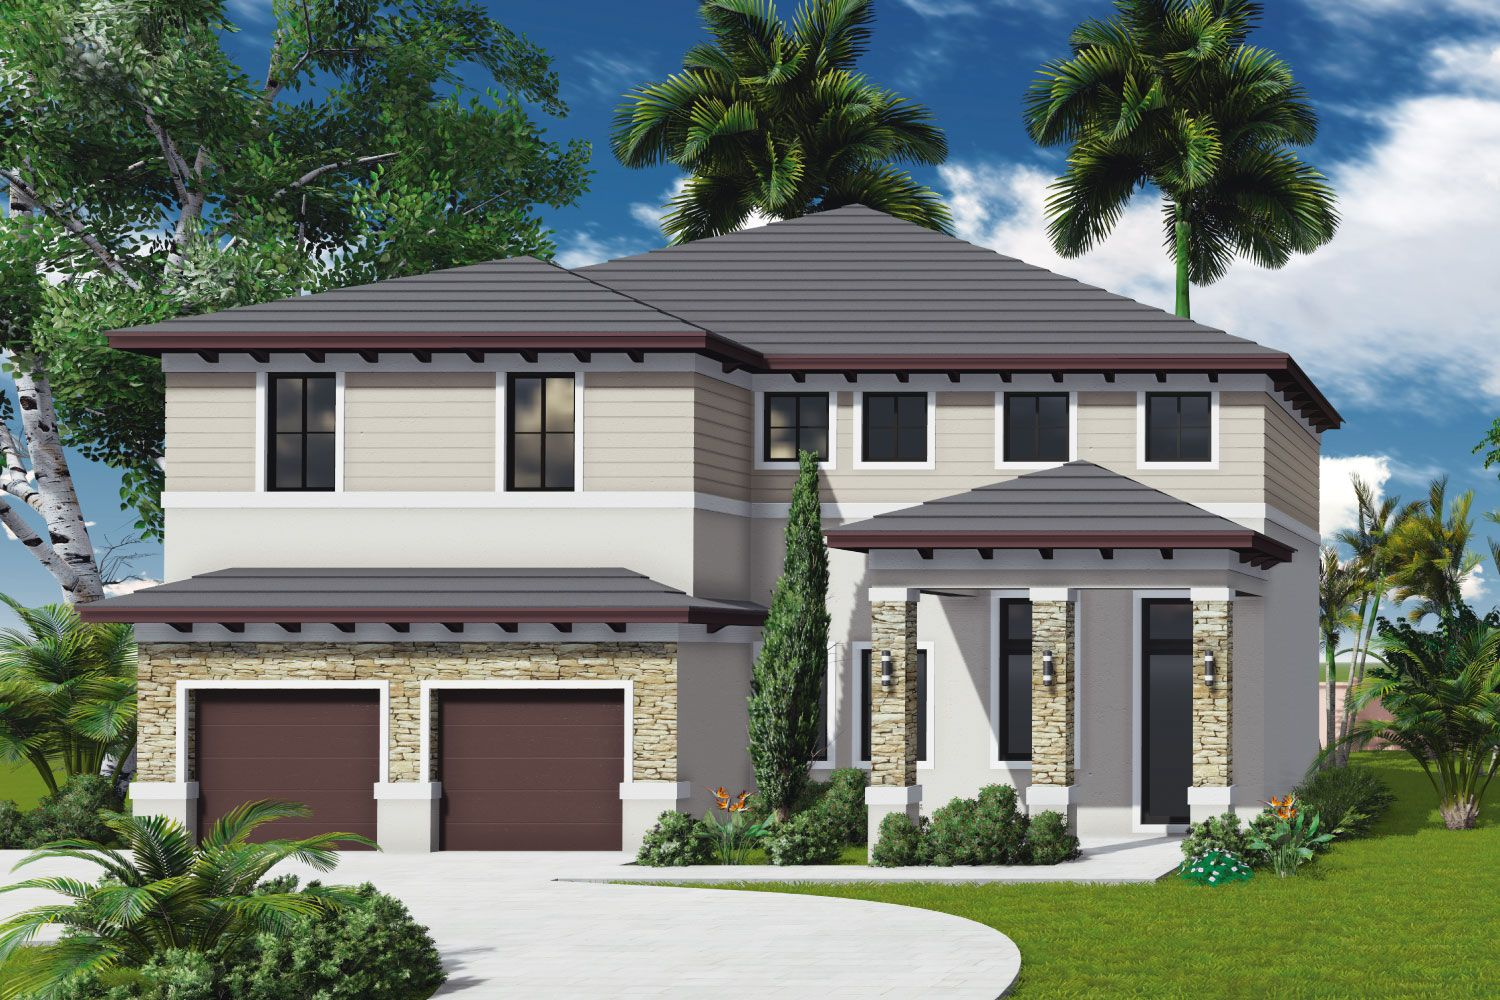 Mountain cove casa bella casa bella ii 1297290 miami for Casa bella homes